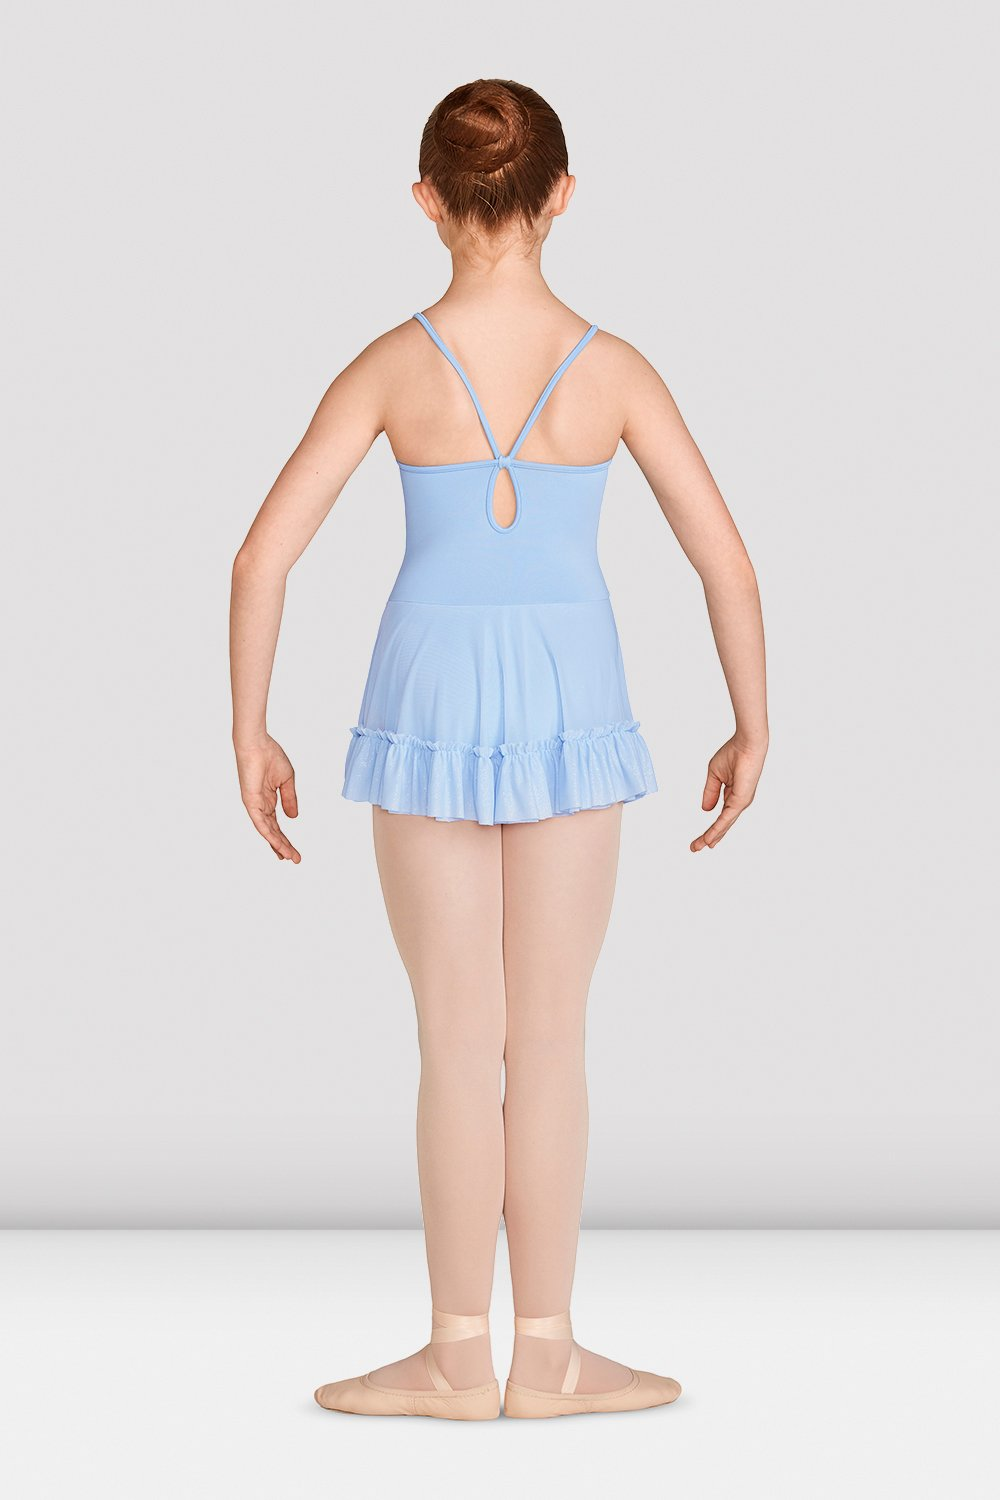 Girls Mirella Vienna Skirts V Back Leotard - BLOCH US